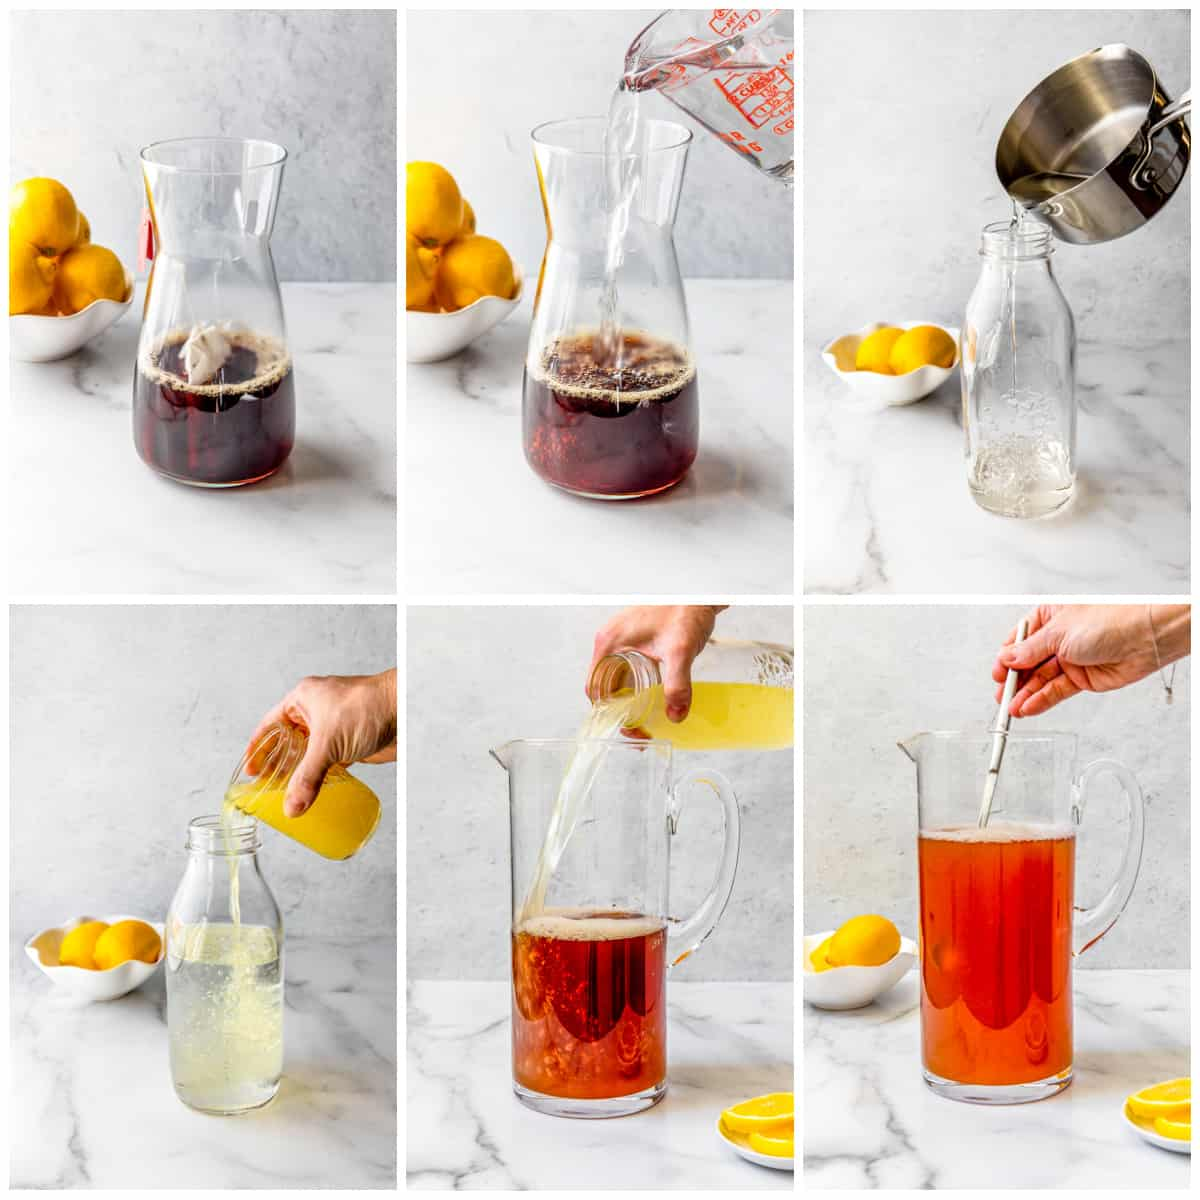 Step by step photos on how to make an Arnold Palmer Drink